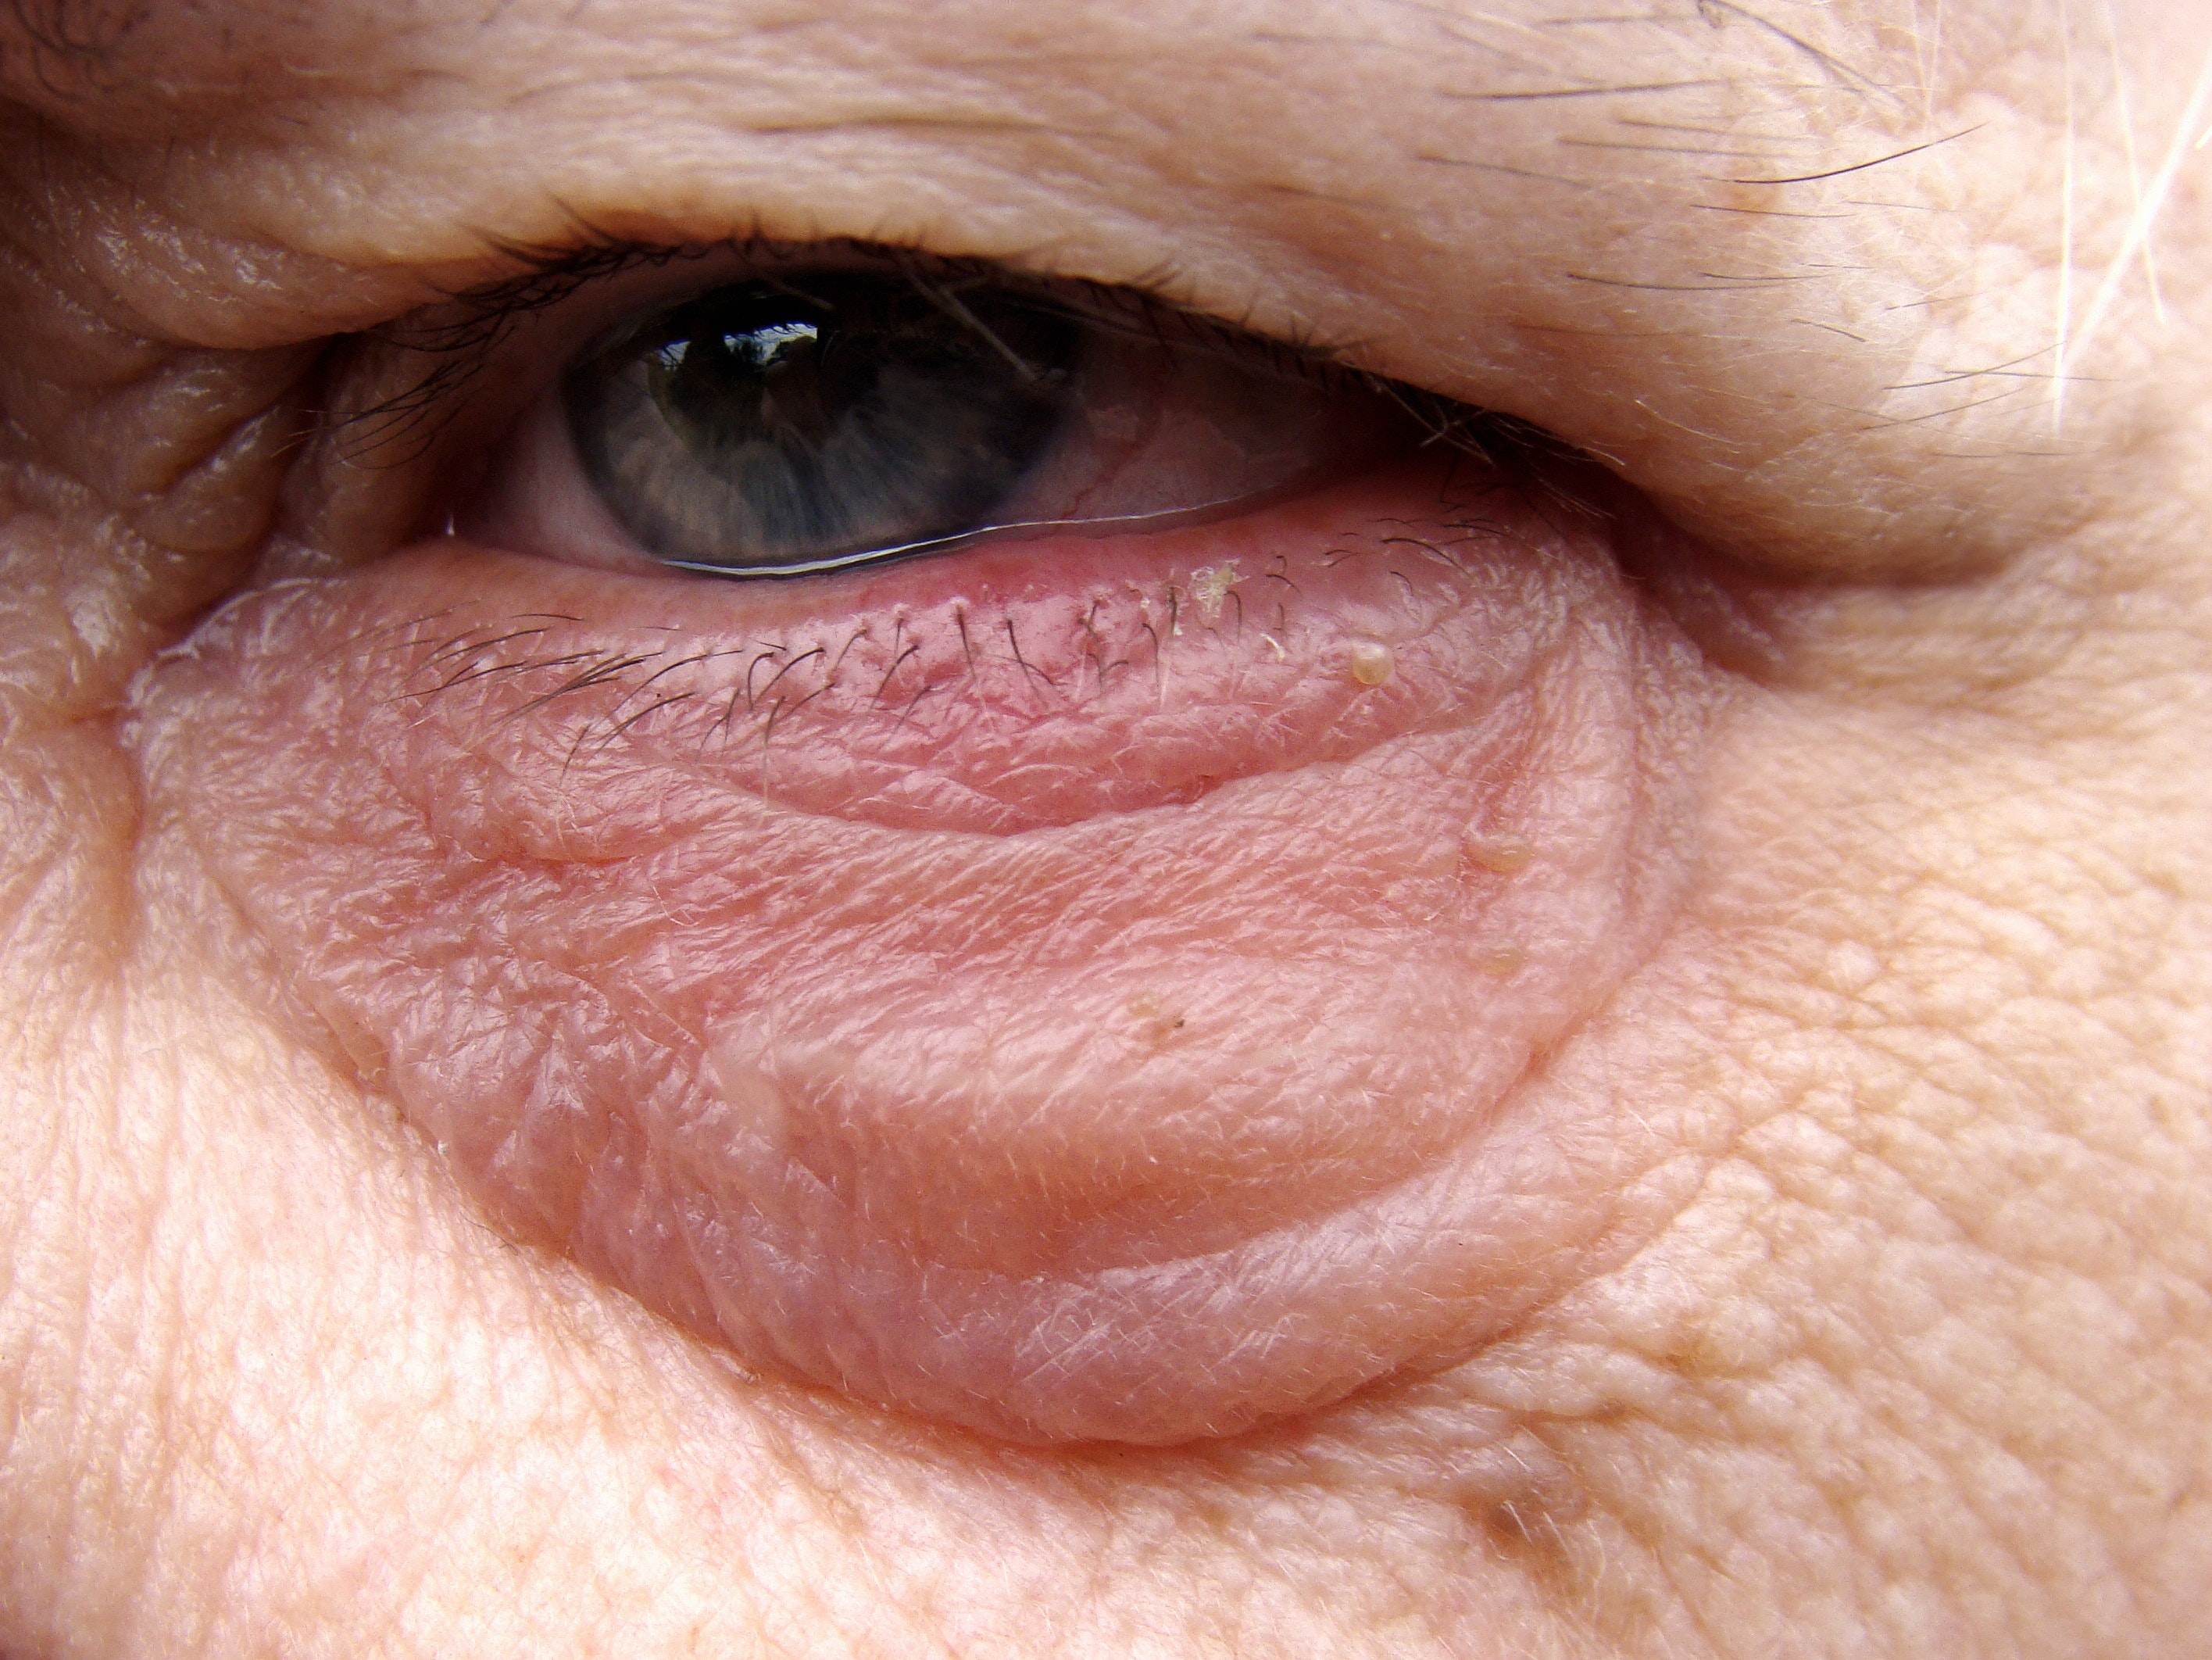 An image depicting a person suffering from eyelid lump symptoms